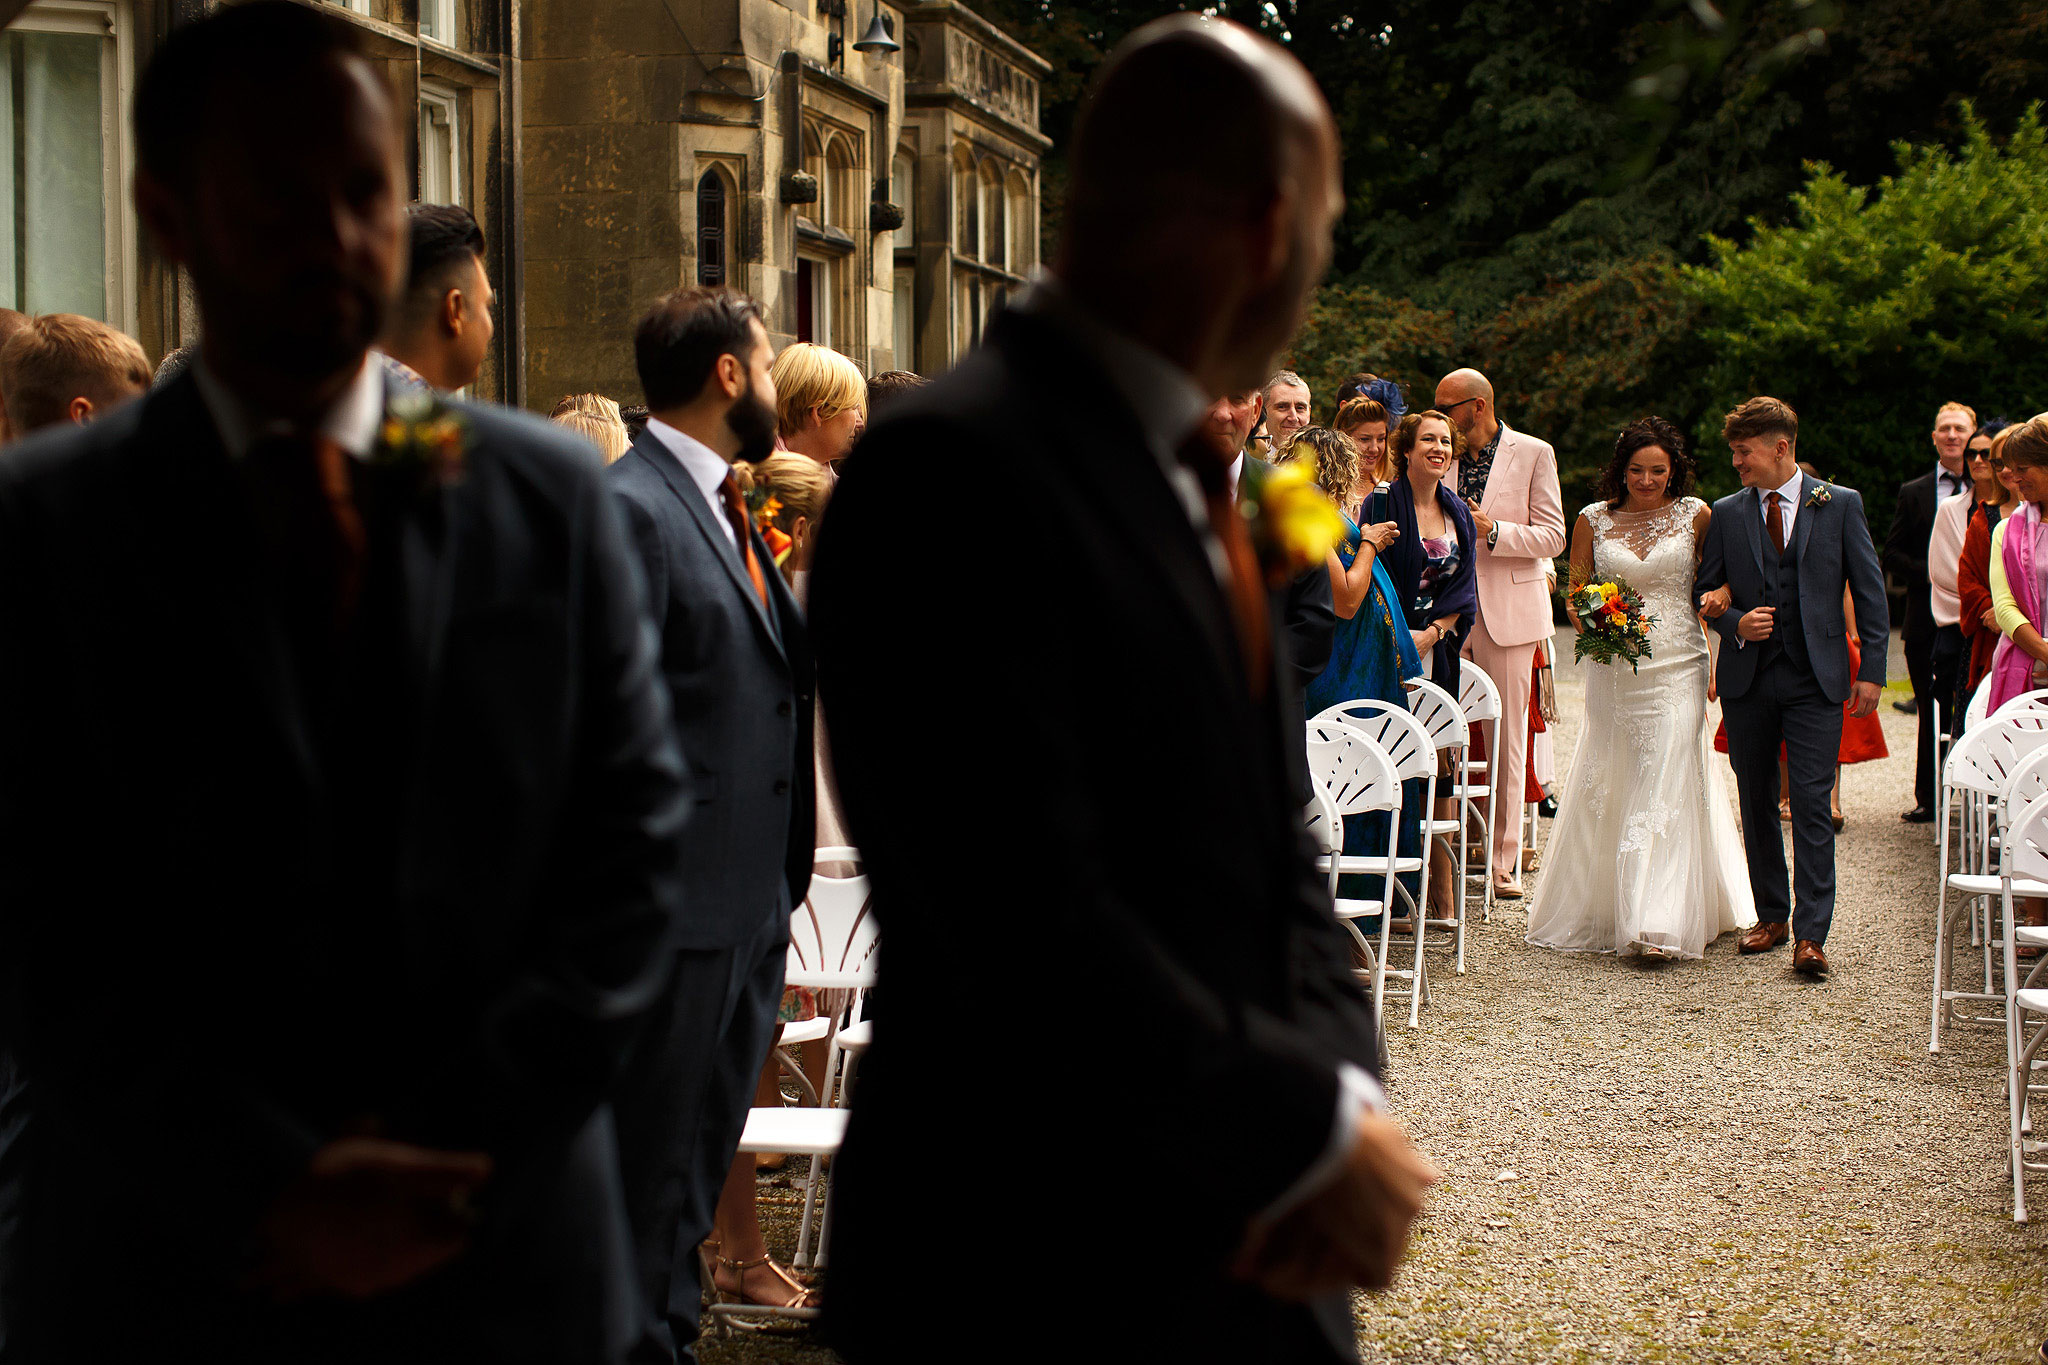 Bride walking down the aisle of outdoor wedding ceremony | Hargate Hall Wedding Photography